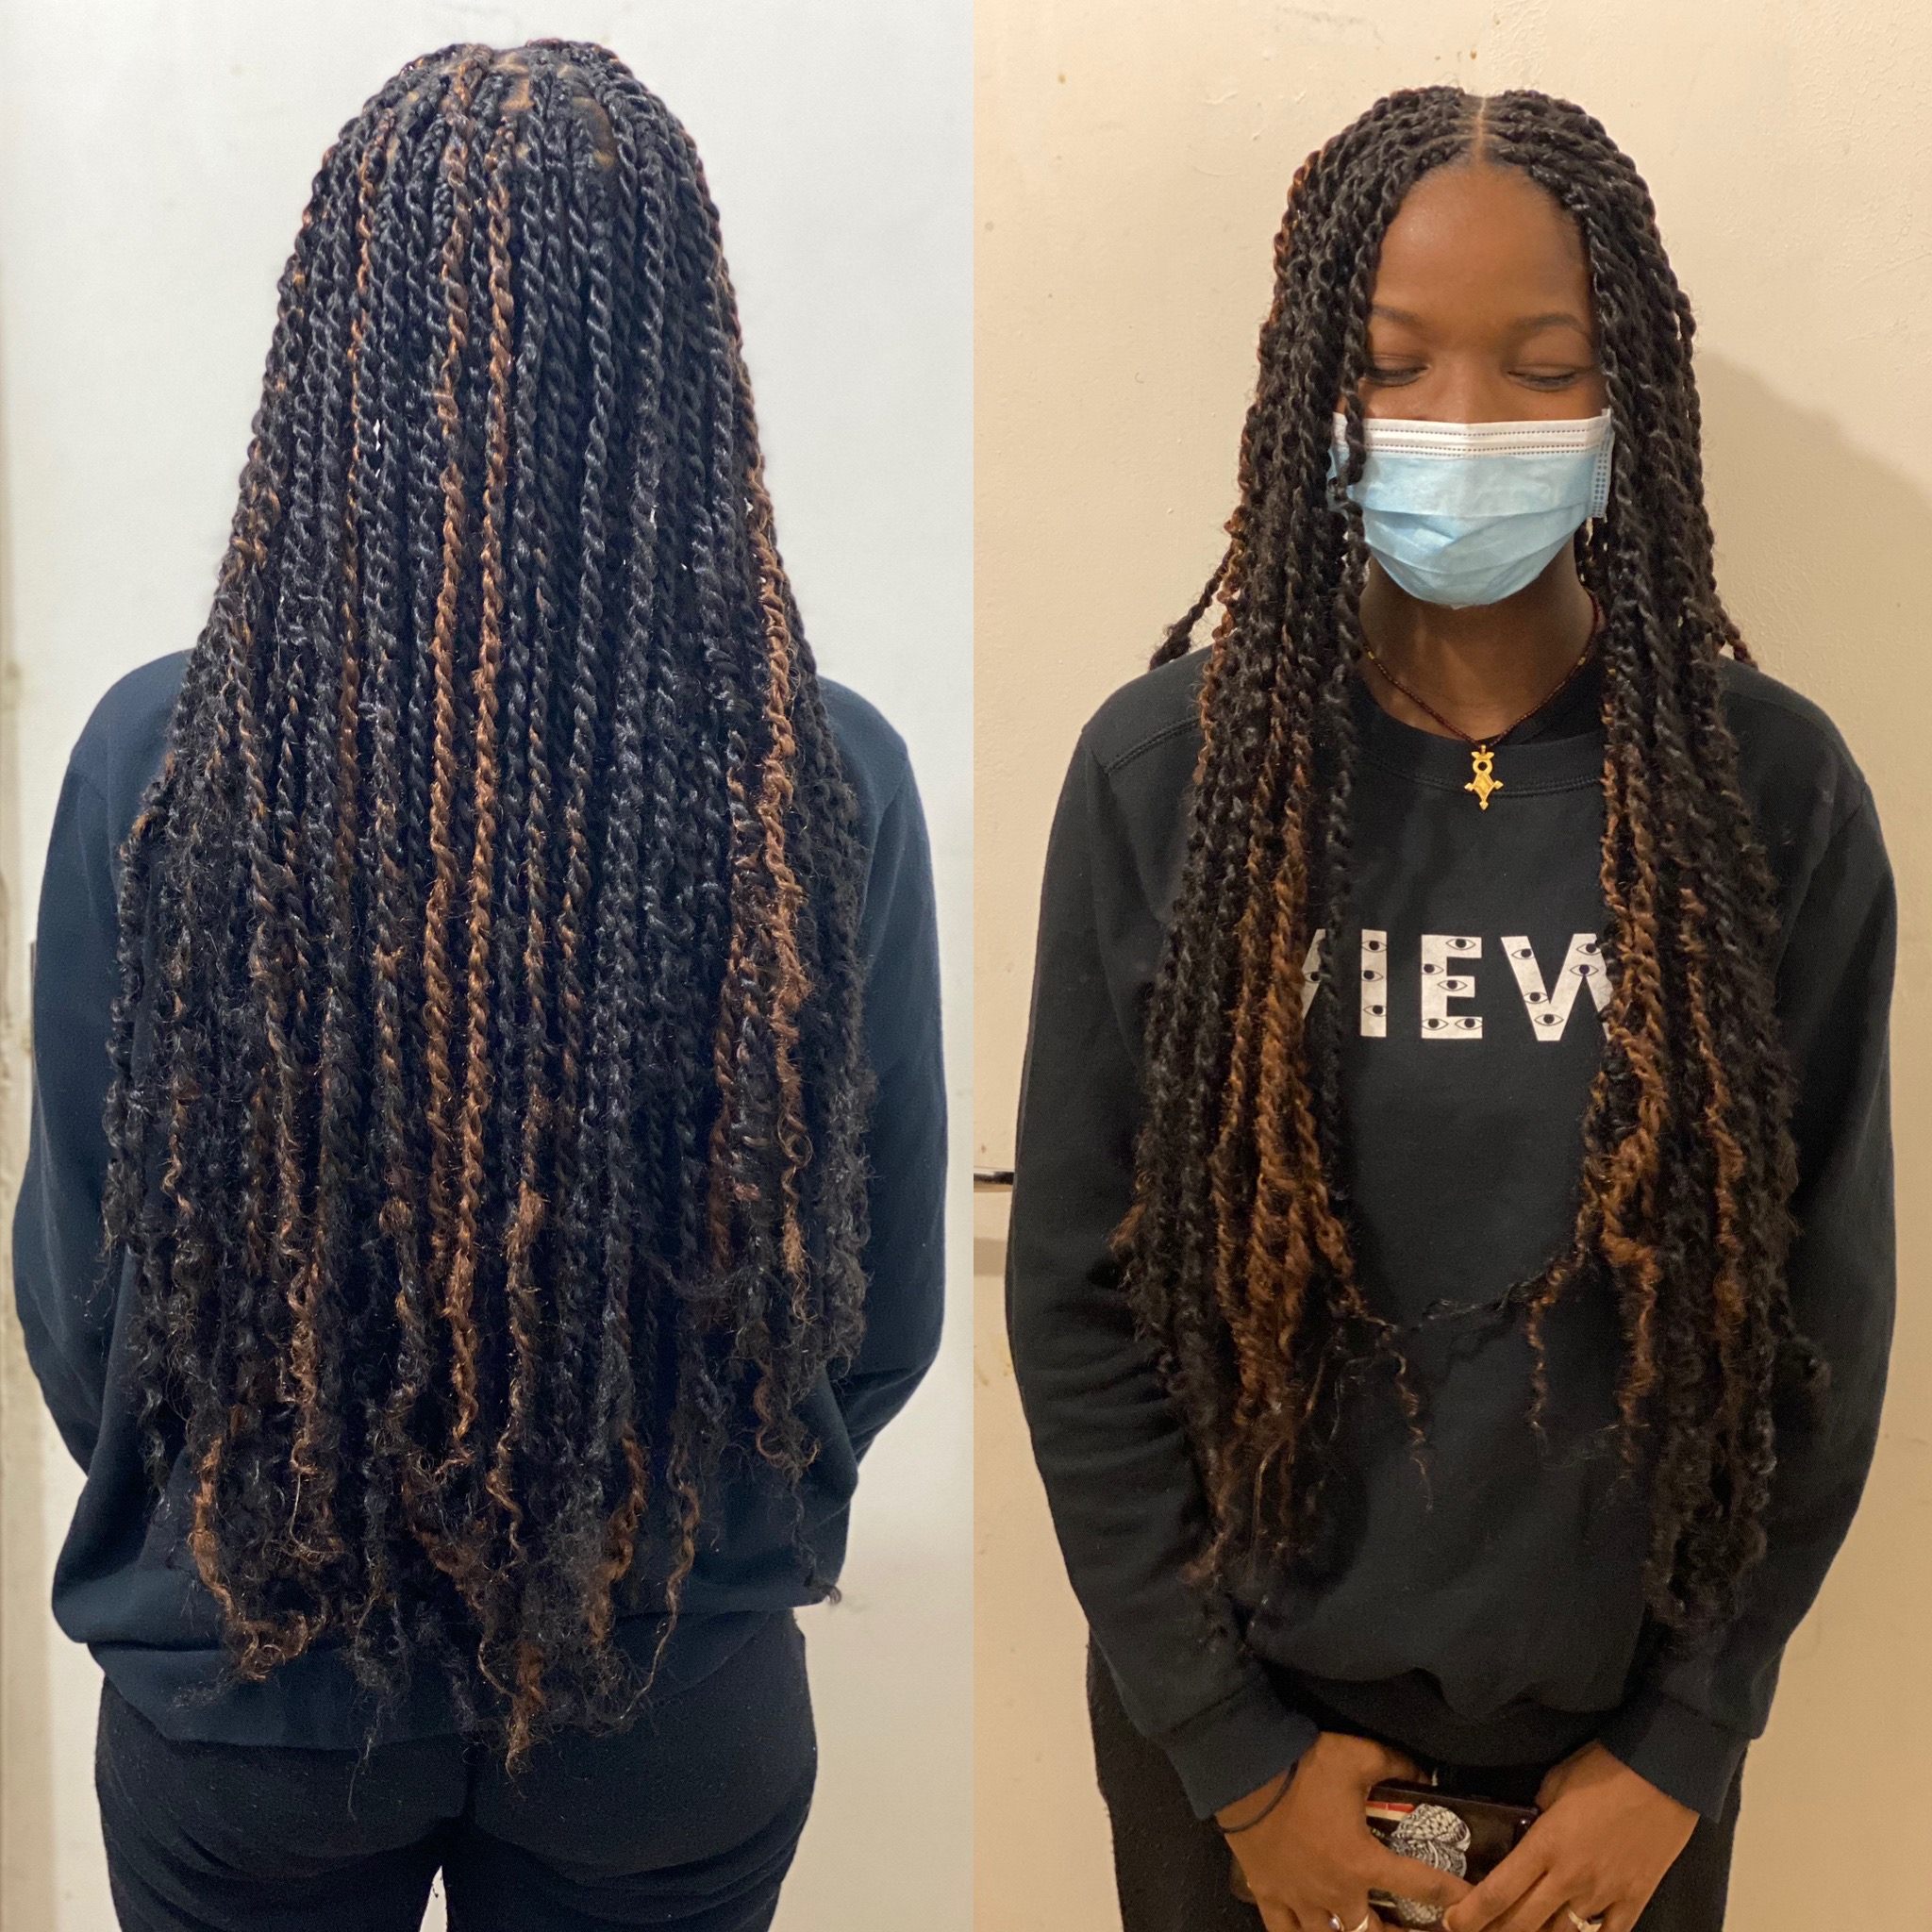 salon de coiffure afro tresse tresses box braids crochet braids vanilles tissages paris 75 77 78 91 92 93 94 95 IFXISREQ